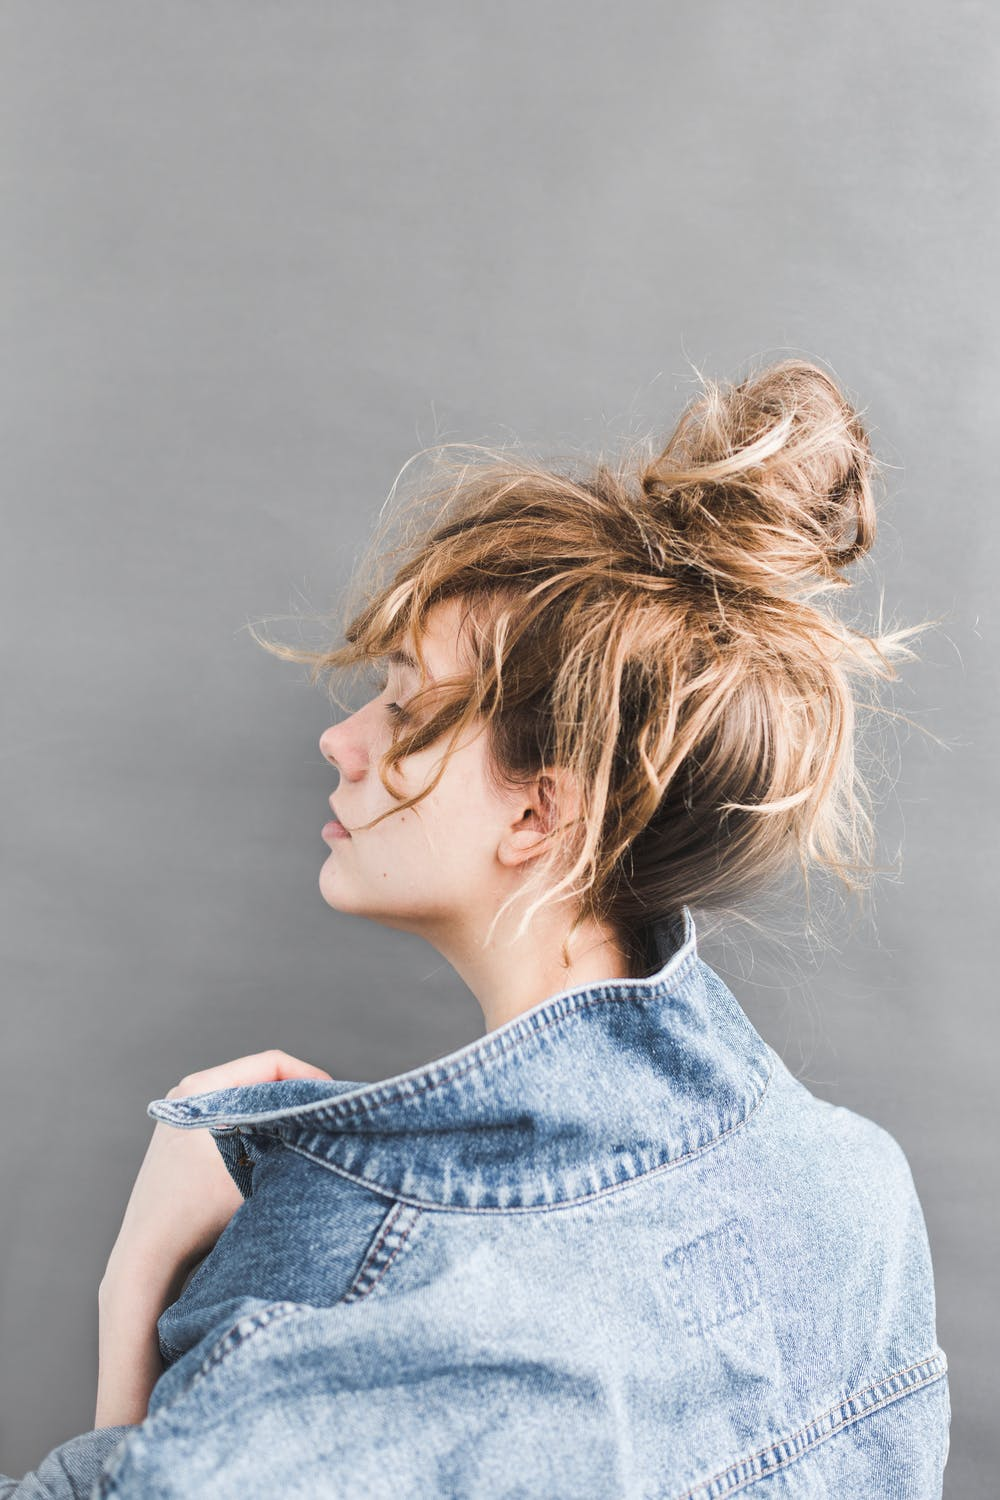 How to Get Hairstyles Like Sally Hershberger